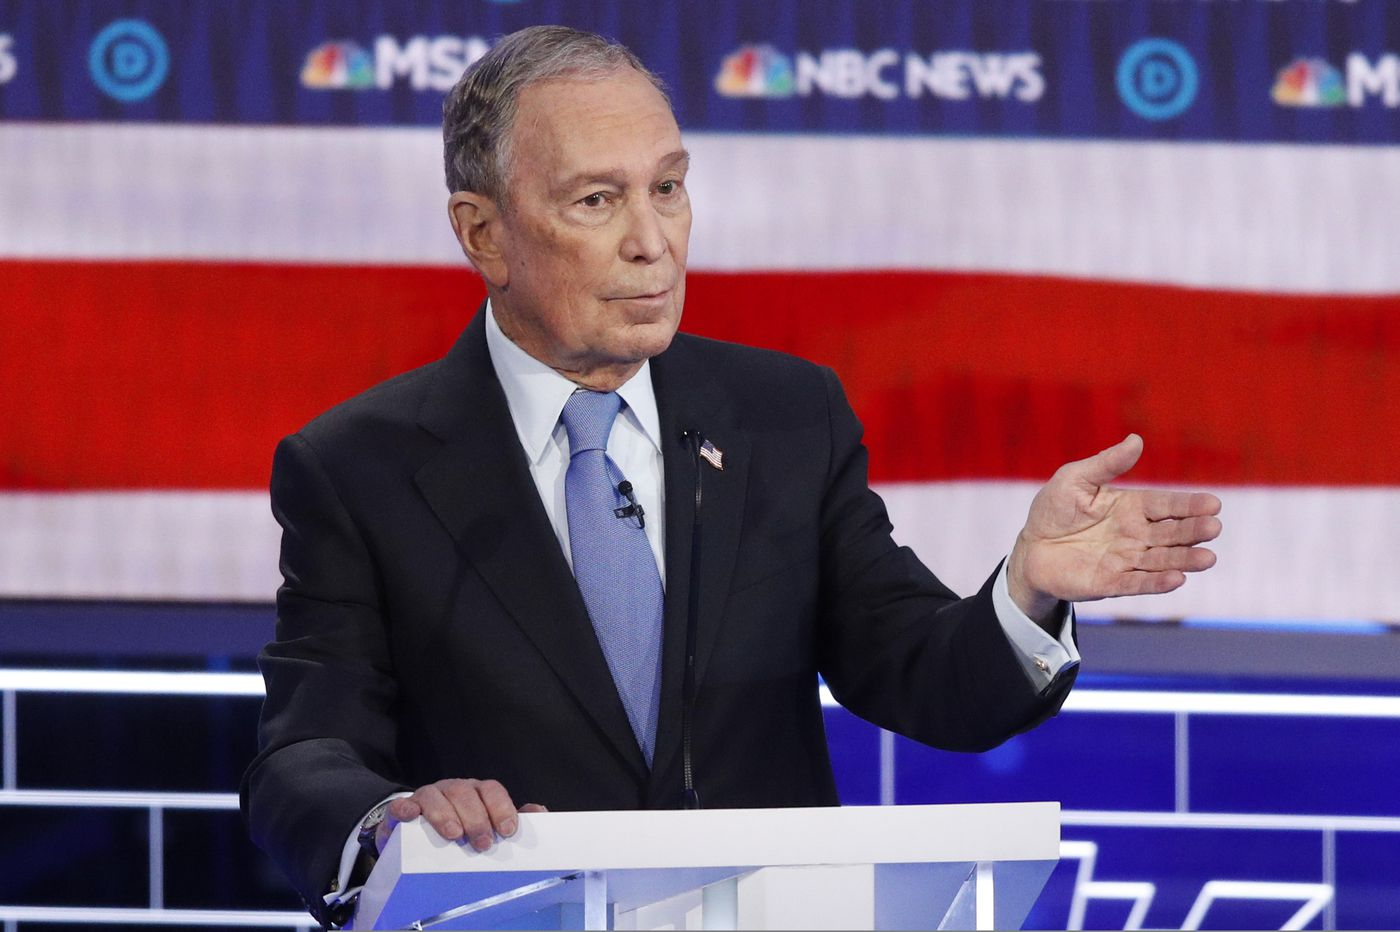 Bloomberg Stumbled During First Democratic Debate